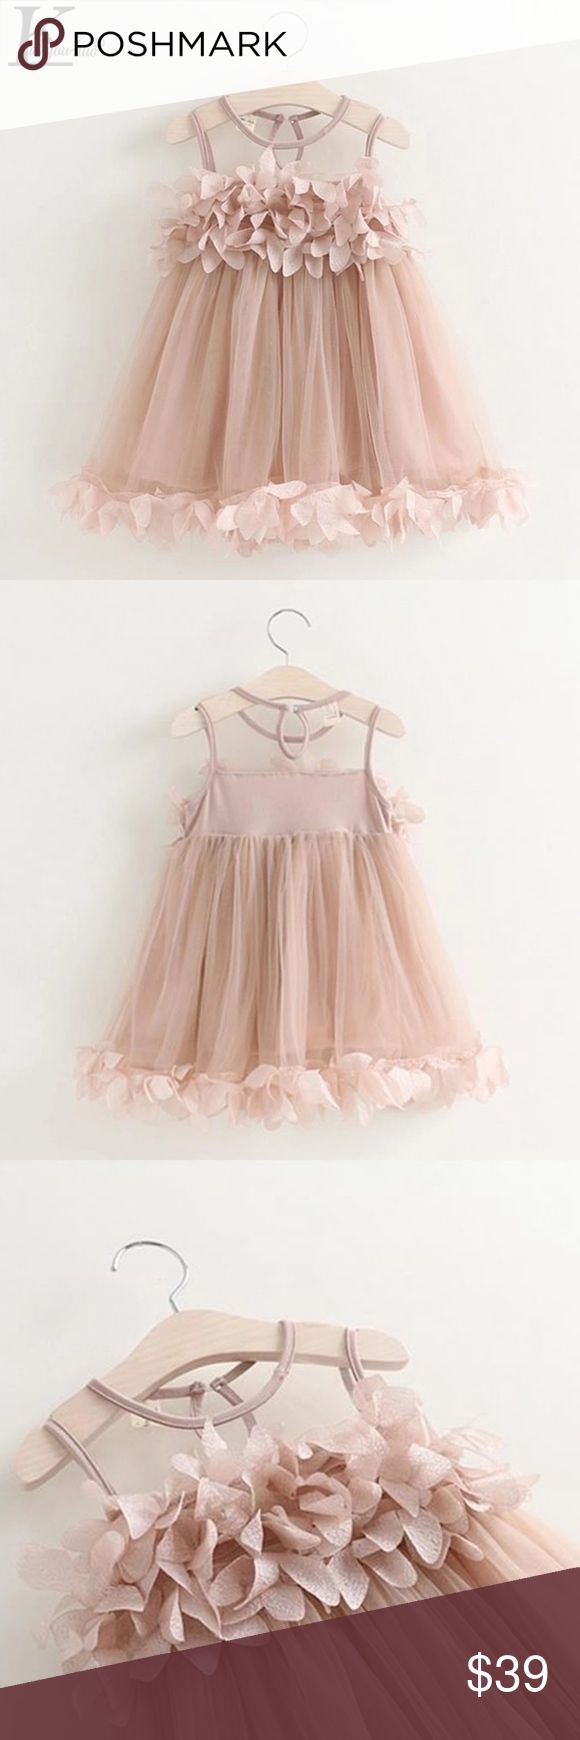 LITTLE DIVA ALERT! ! New Petal tiered dress Just got a bunch of sizes and this is the newest addition to my little diva Collection. Gorgeous little dress for a little diva in training. My daughter has this dress and I received so many compliments on it that I had to share with my fellow poshers. Color is a pink blush color. Happy Poshing! My Little Diva Collection Dresses